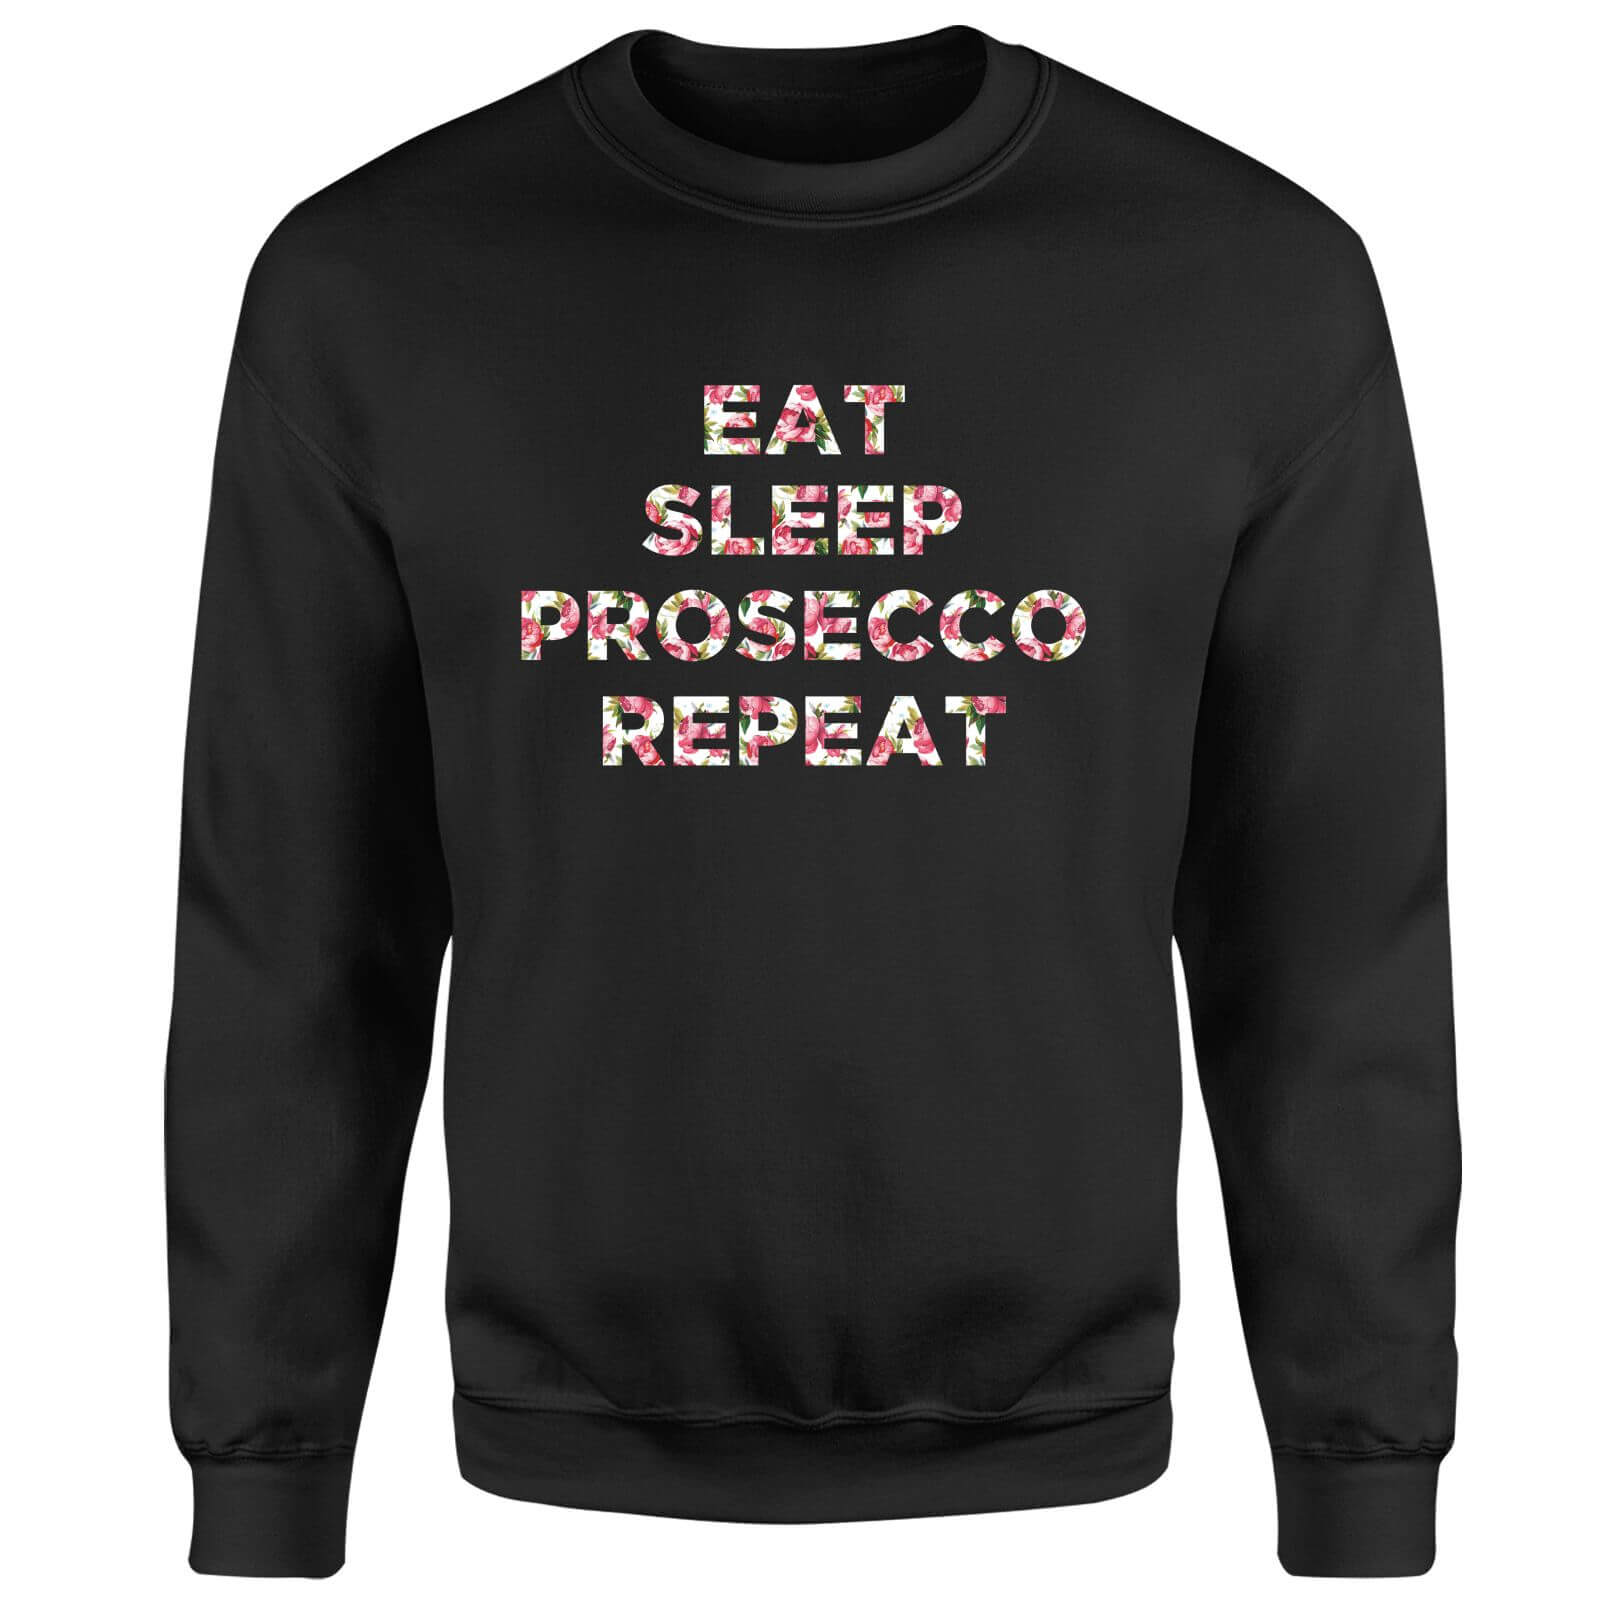 Eat Sleep Prosecco Repeat Sweatshirt - Black